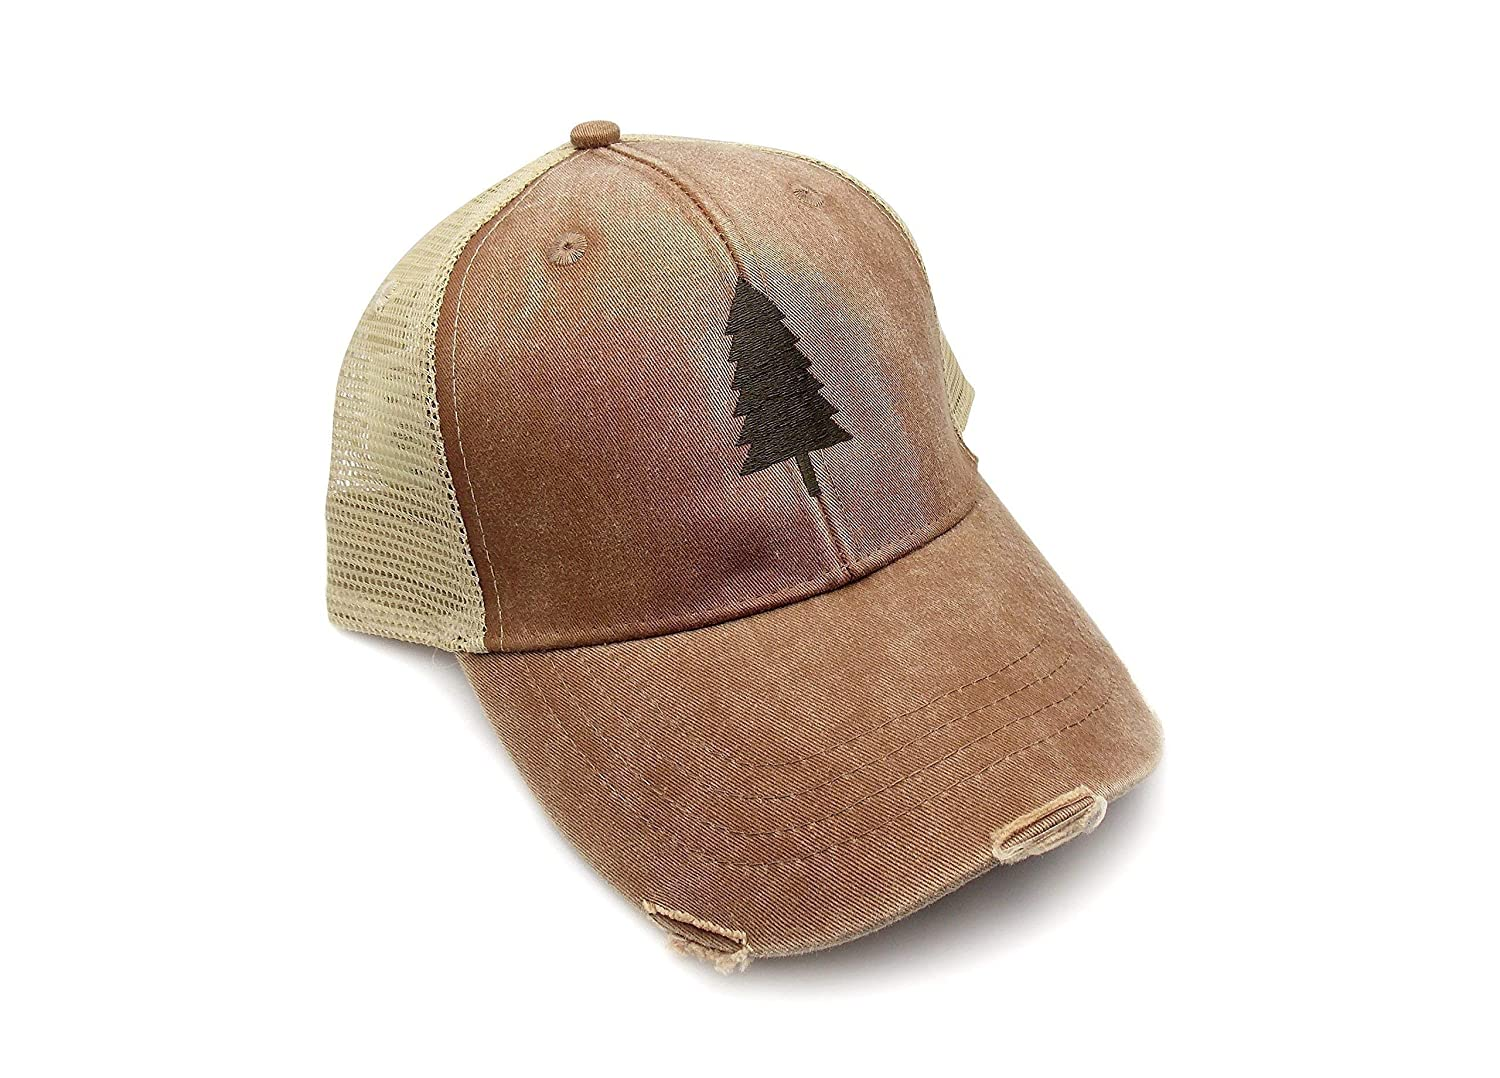 B01JVI63I4 Trucker Hat - Wilderness Area - Adjustable Men's/Unisex Distressed Trucker Hat - 2 Color Options Available 918ISIbQV1L